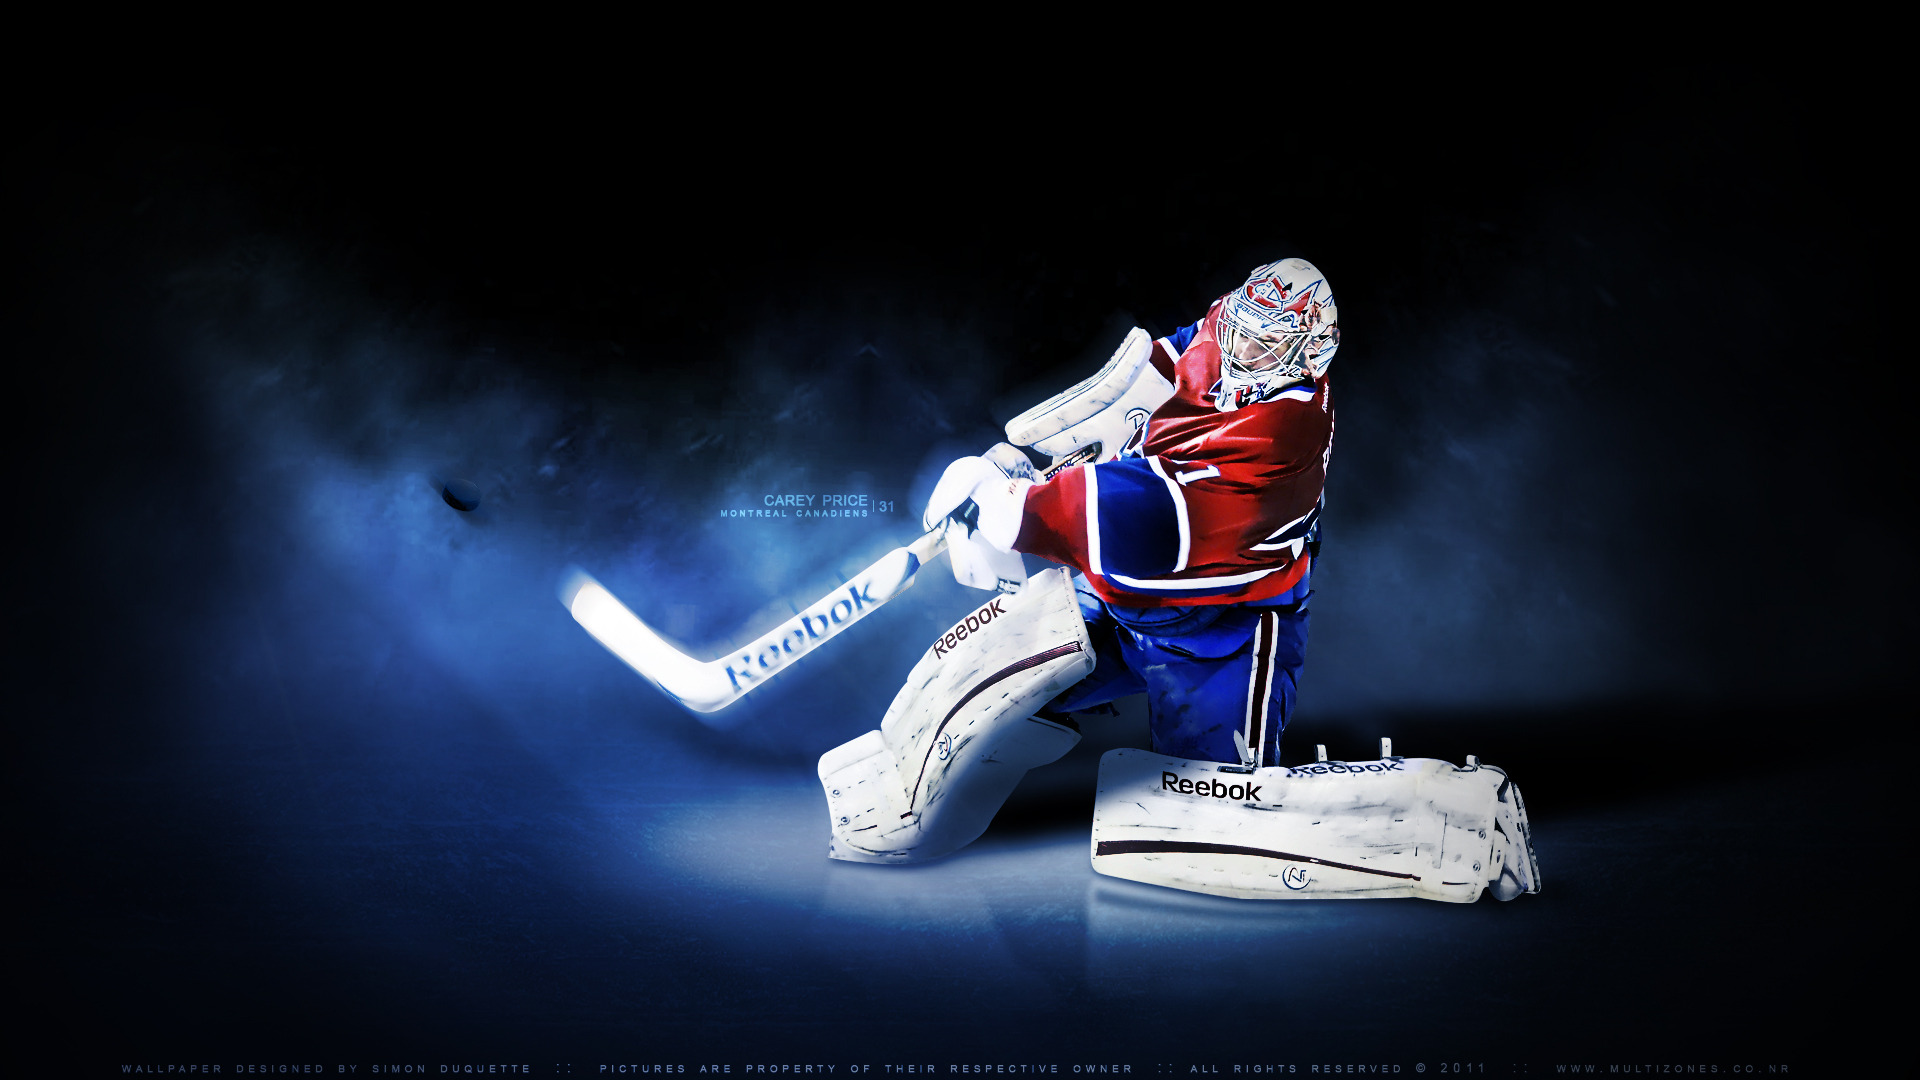 Cool hockey backgrounds wallpapersafari - Nhl hockey wallpapers ...